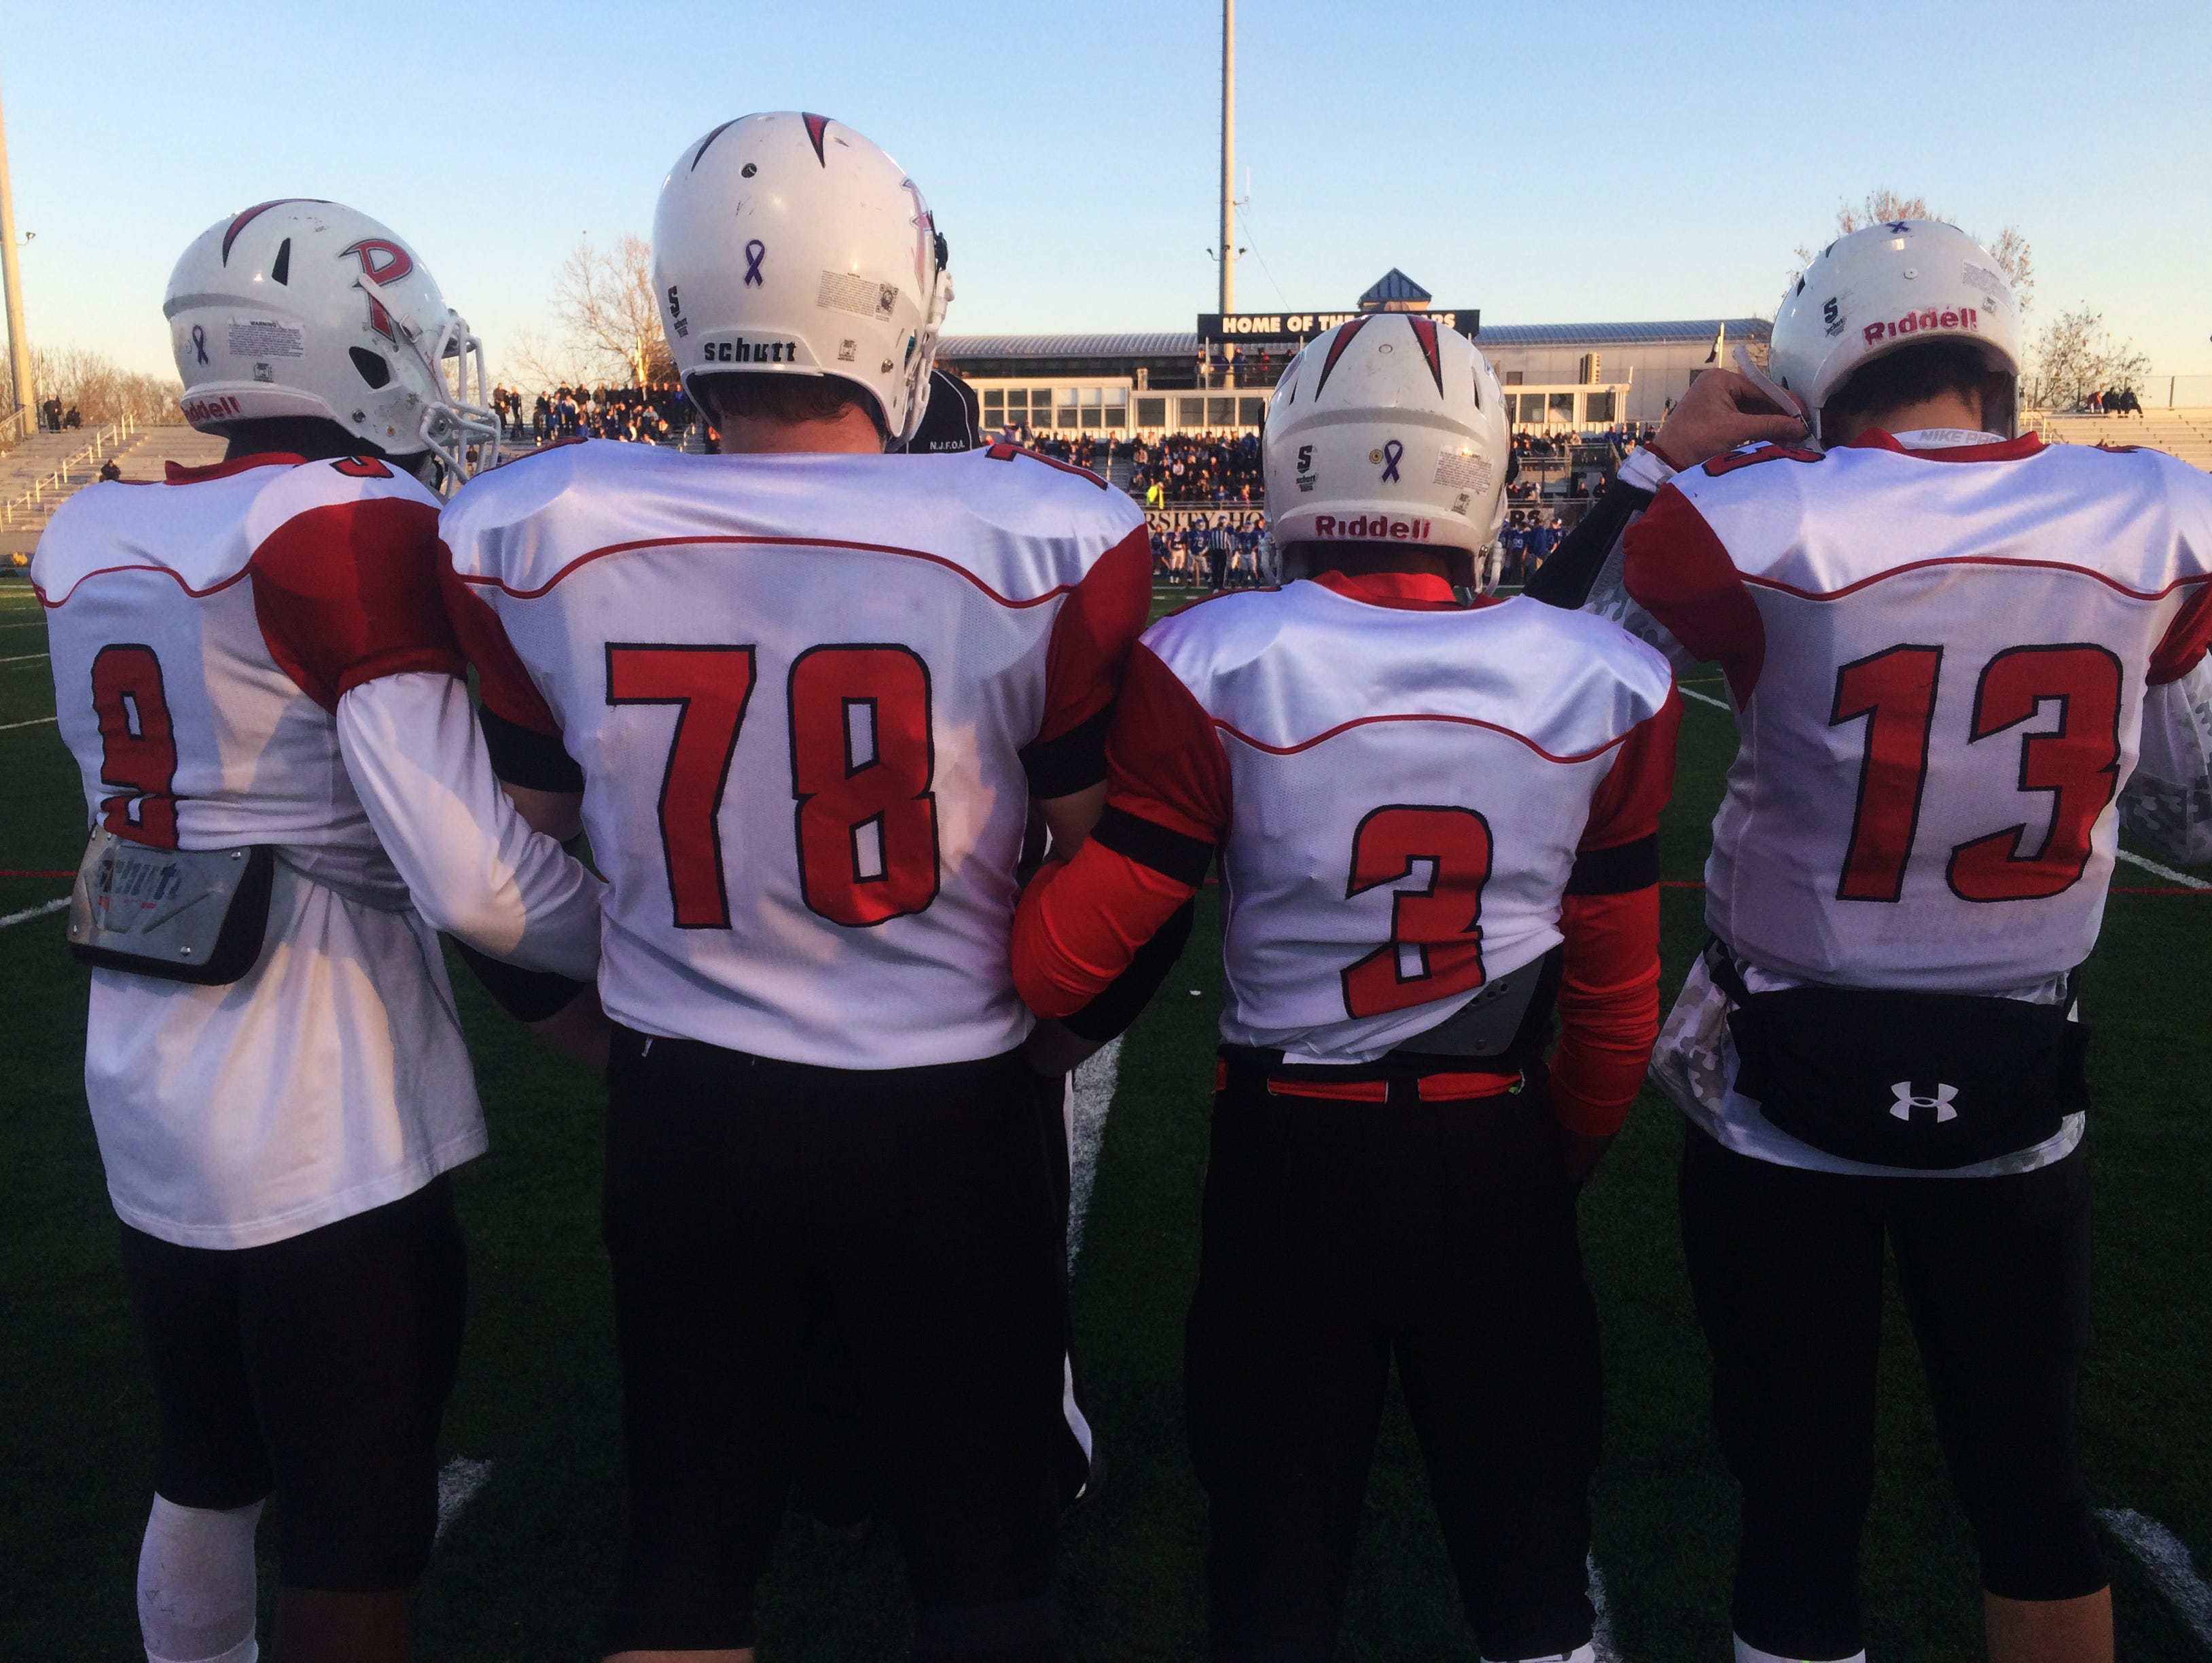 Palmyra High School football captains Kelvin Harmon (9), Noah Stephenson (78), Kam Kennedy (3) and Max Smyth (13) ready for the coin toss before Dec. 5's Central Jersey Group 1 championship at Kean University.